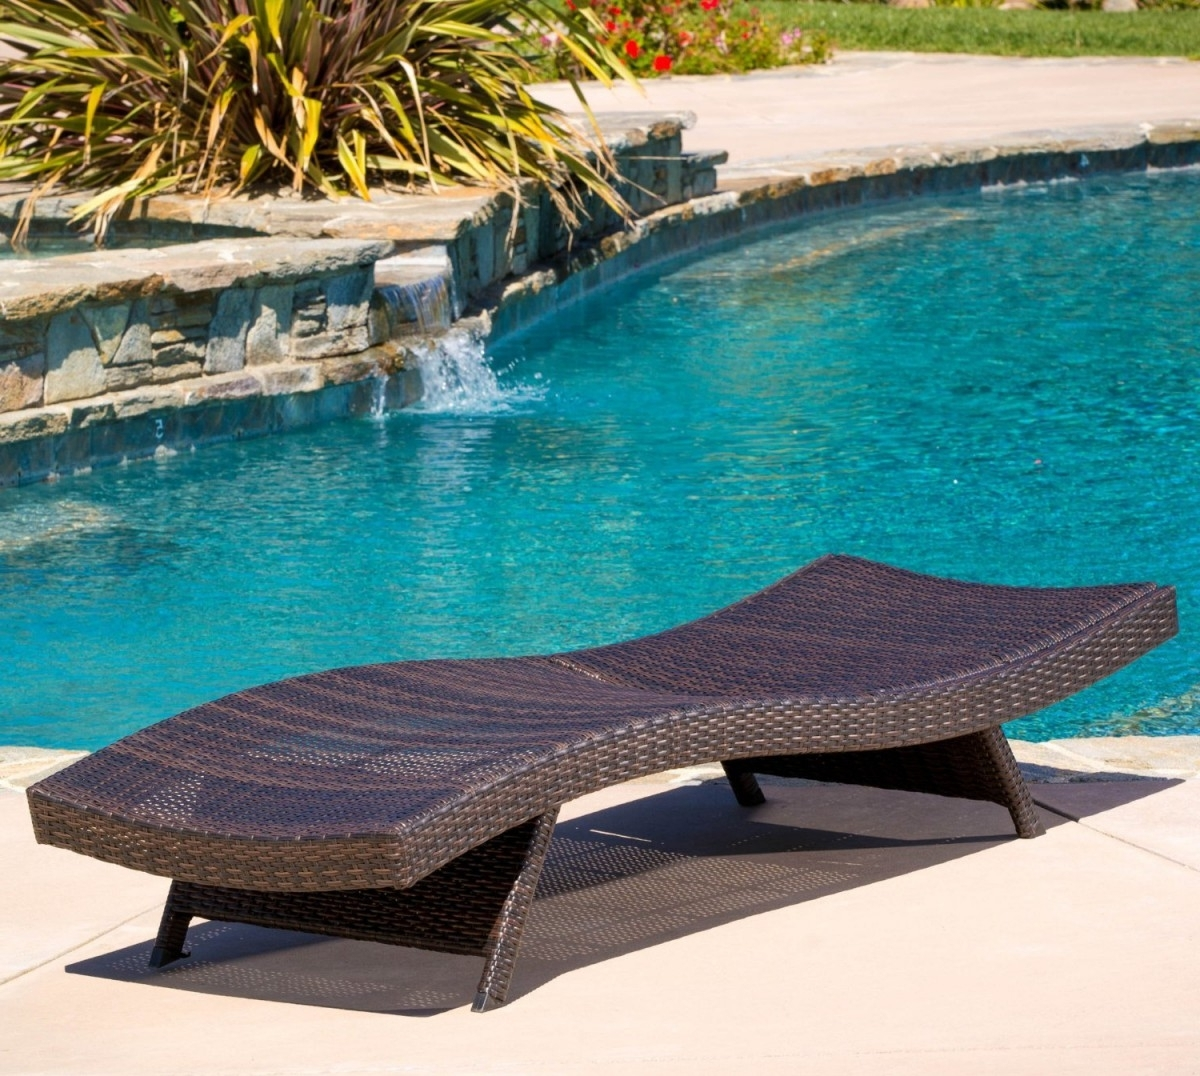 Folding Wicker Outdoor Chaise Lounge Chair In Fashionable Keter Chaise Lounges (View 11 of 15)